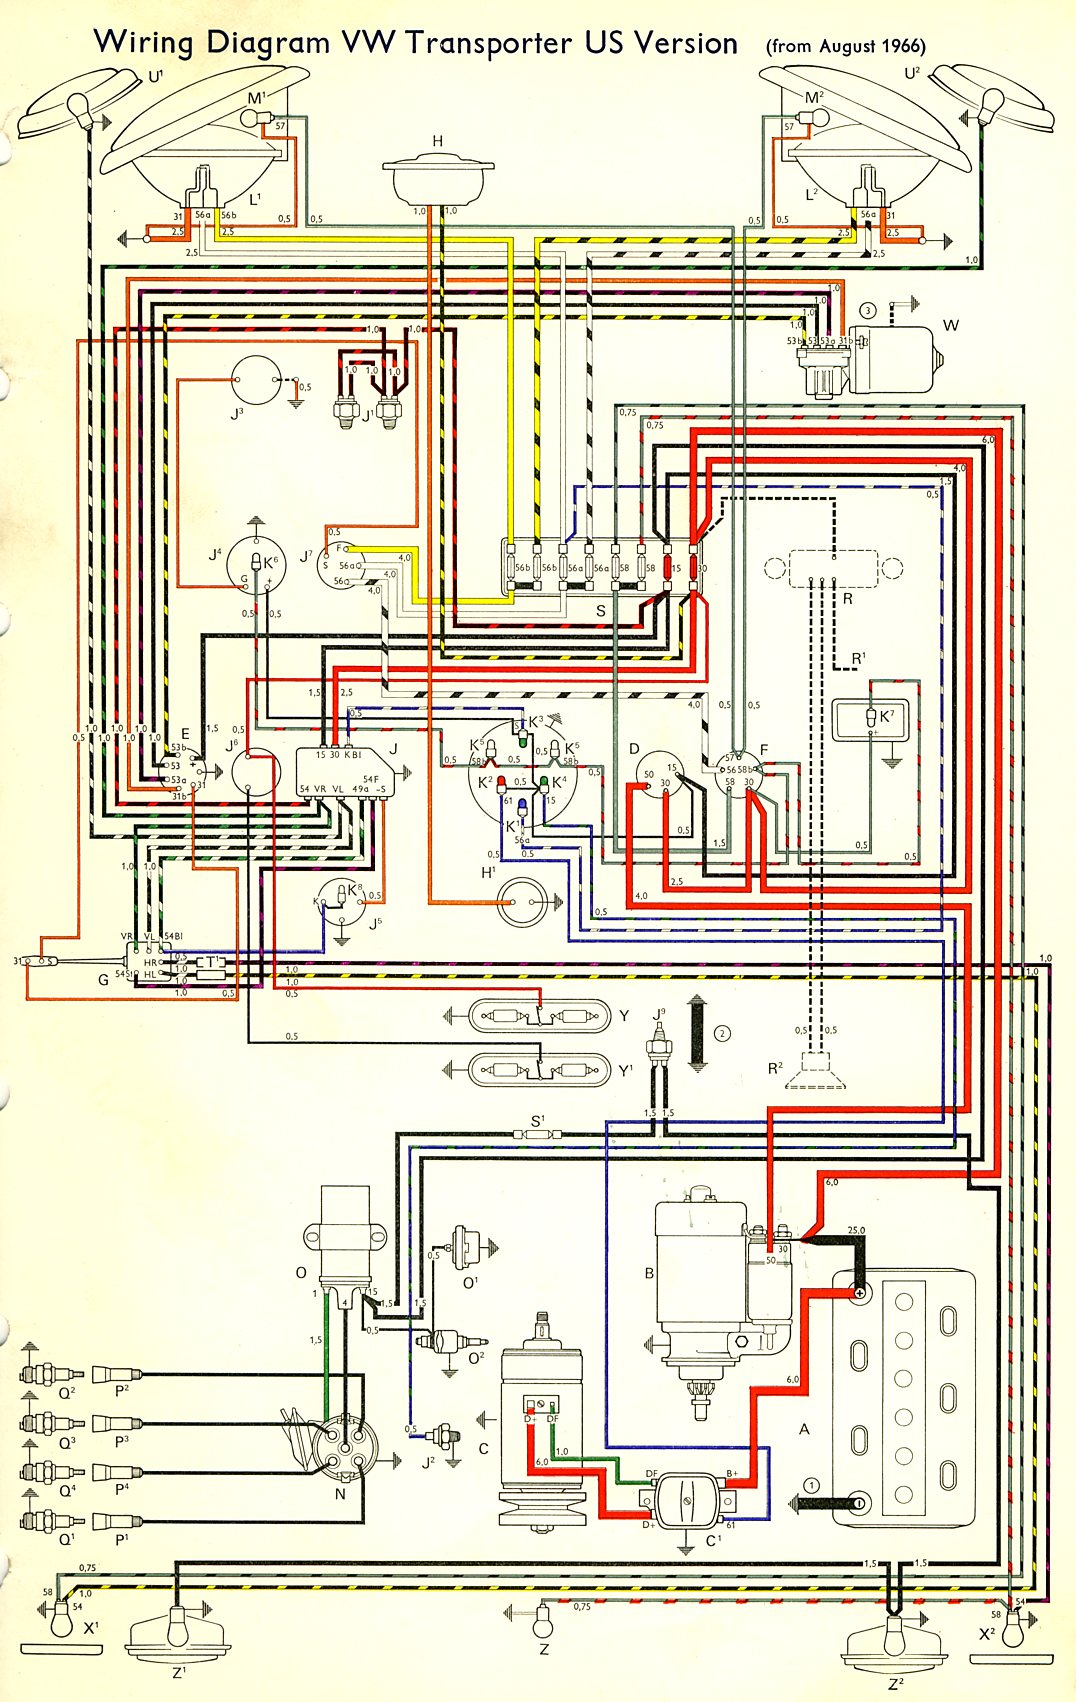 1968 vw bug wiring diagram 1967 bus    wiring       diagram     usa  thegoldenbug com  1967 bus    wiring       diagram     usa  thegoldenbug com